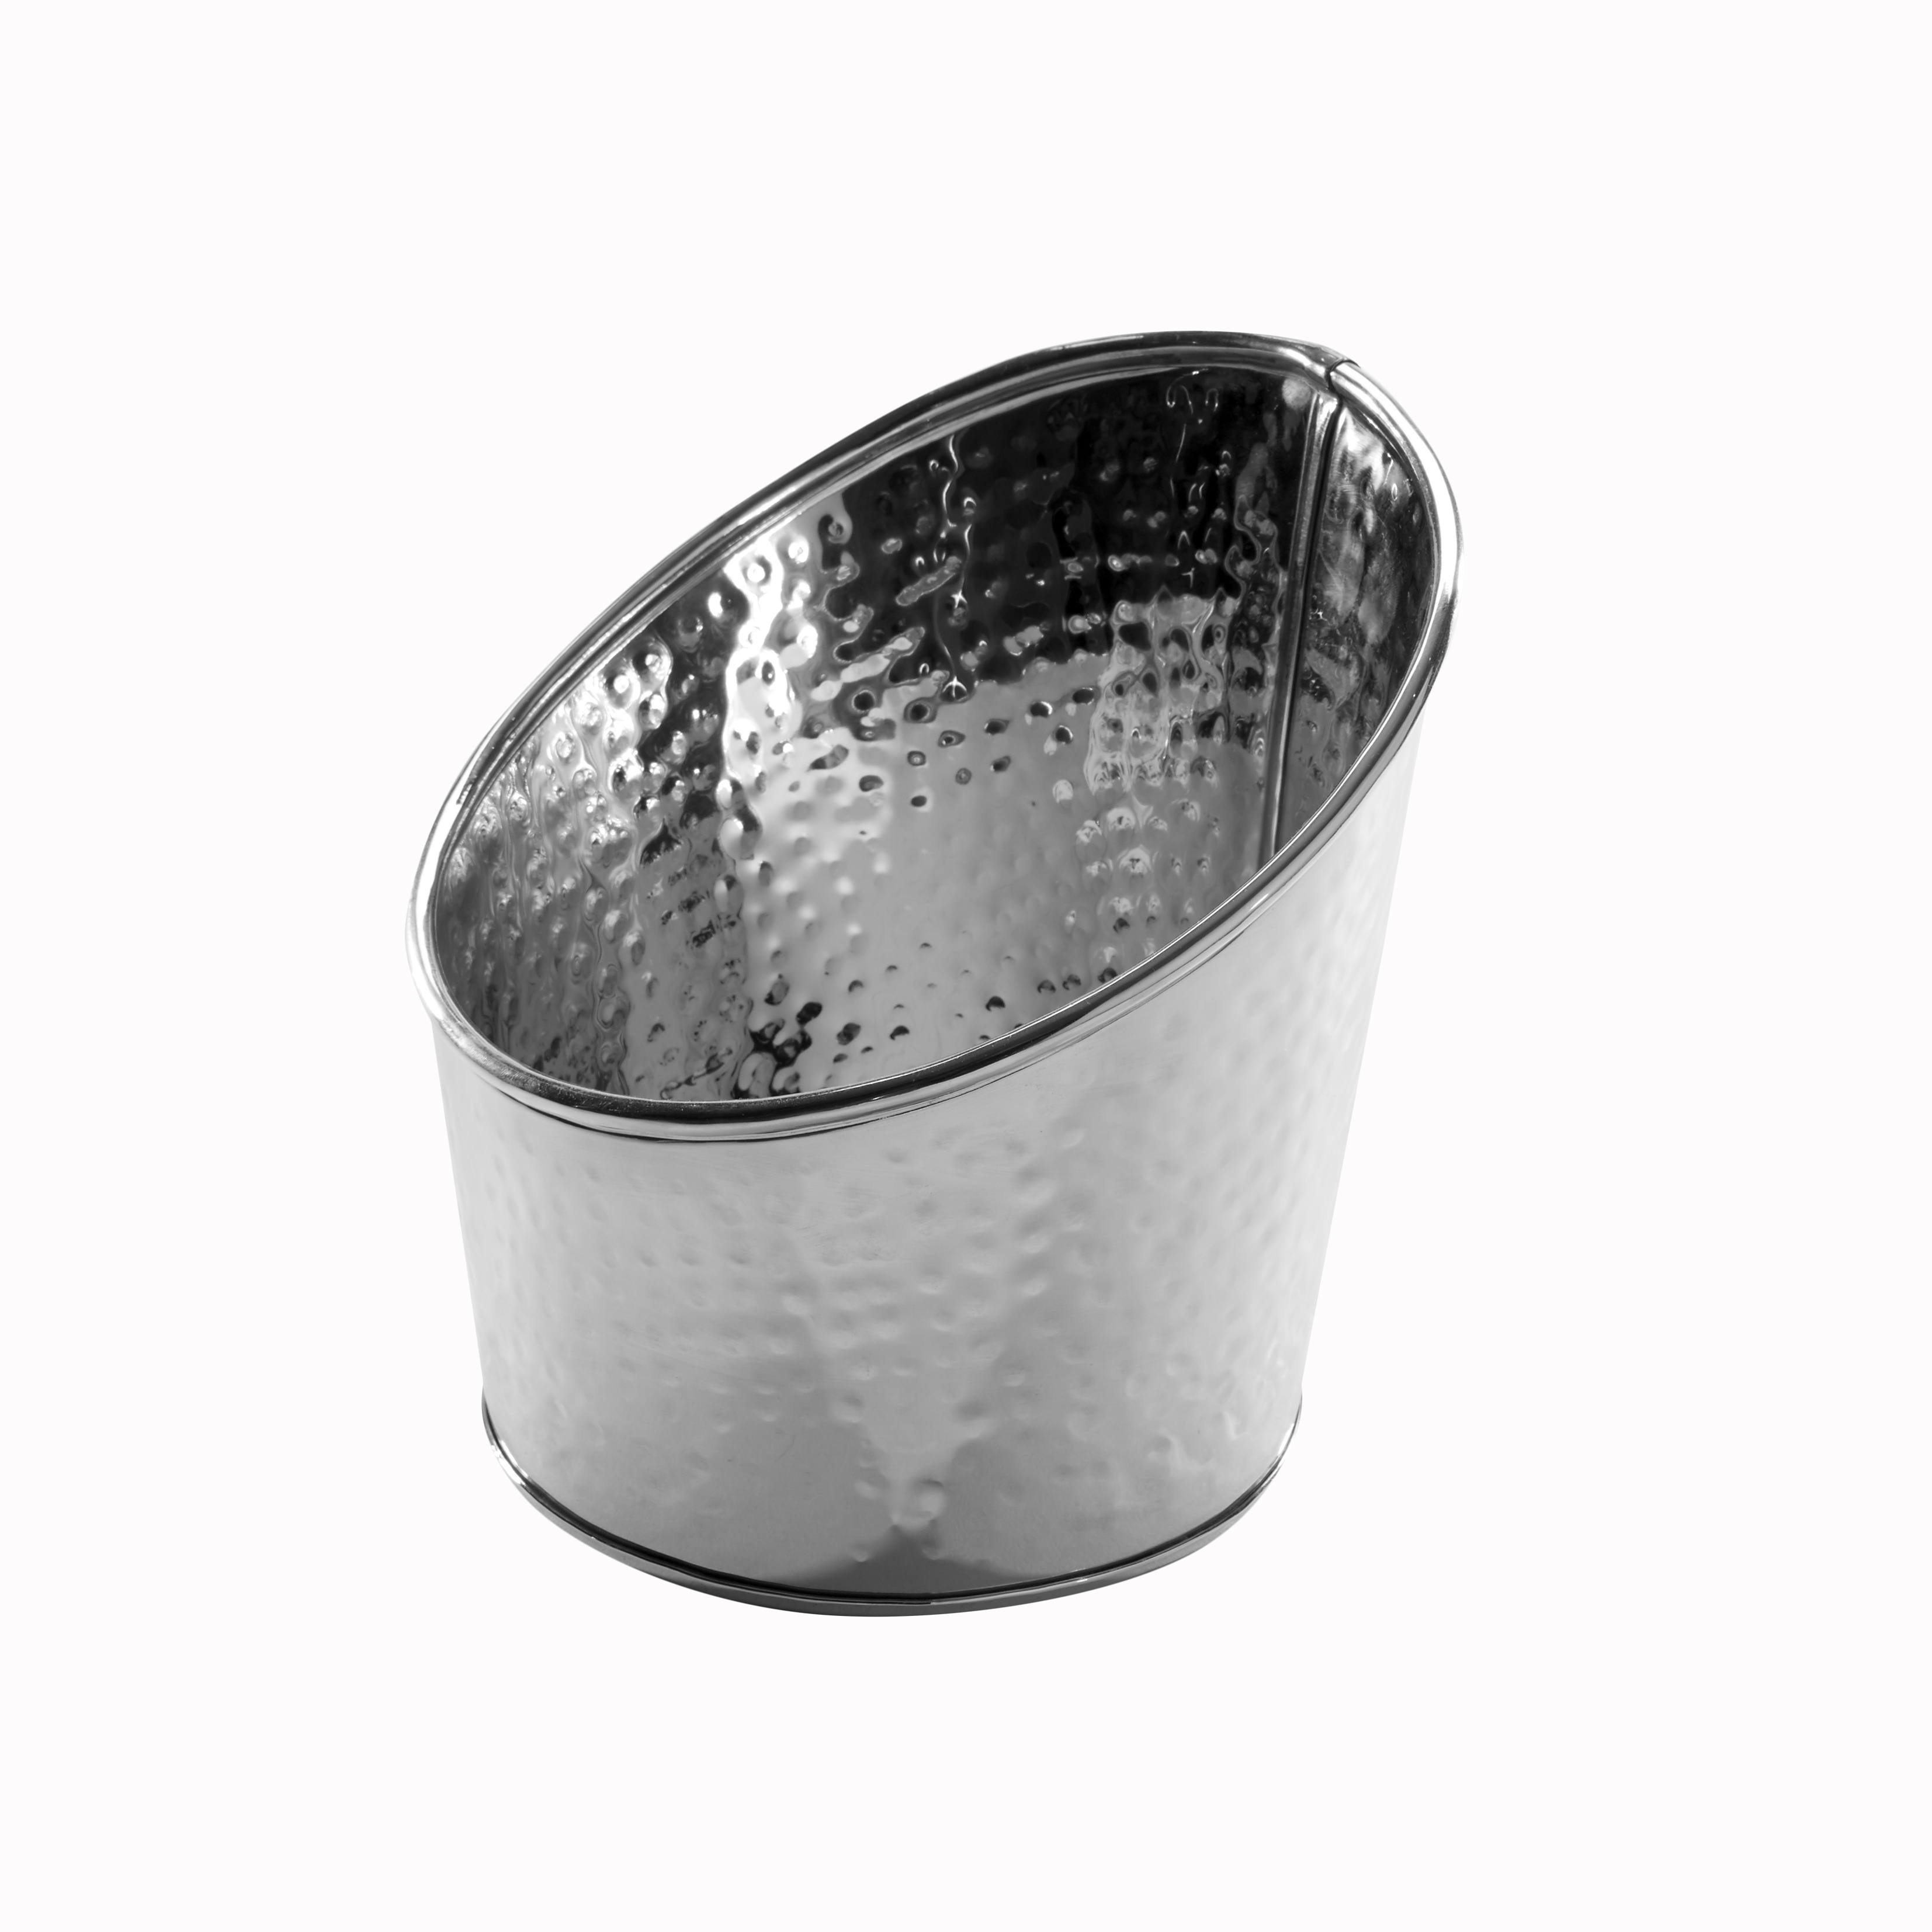 American Metalcraft HMSR6 beverage / ice tub